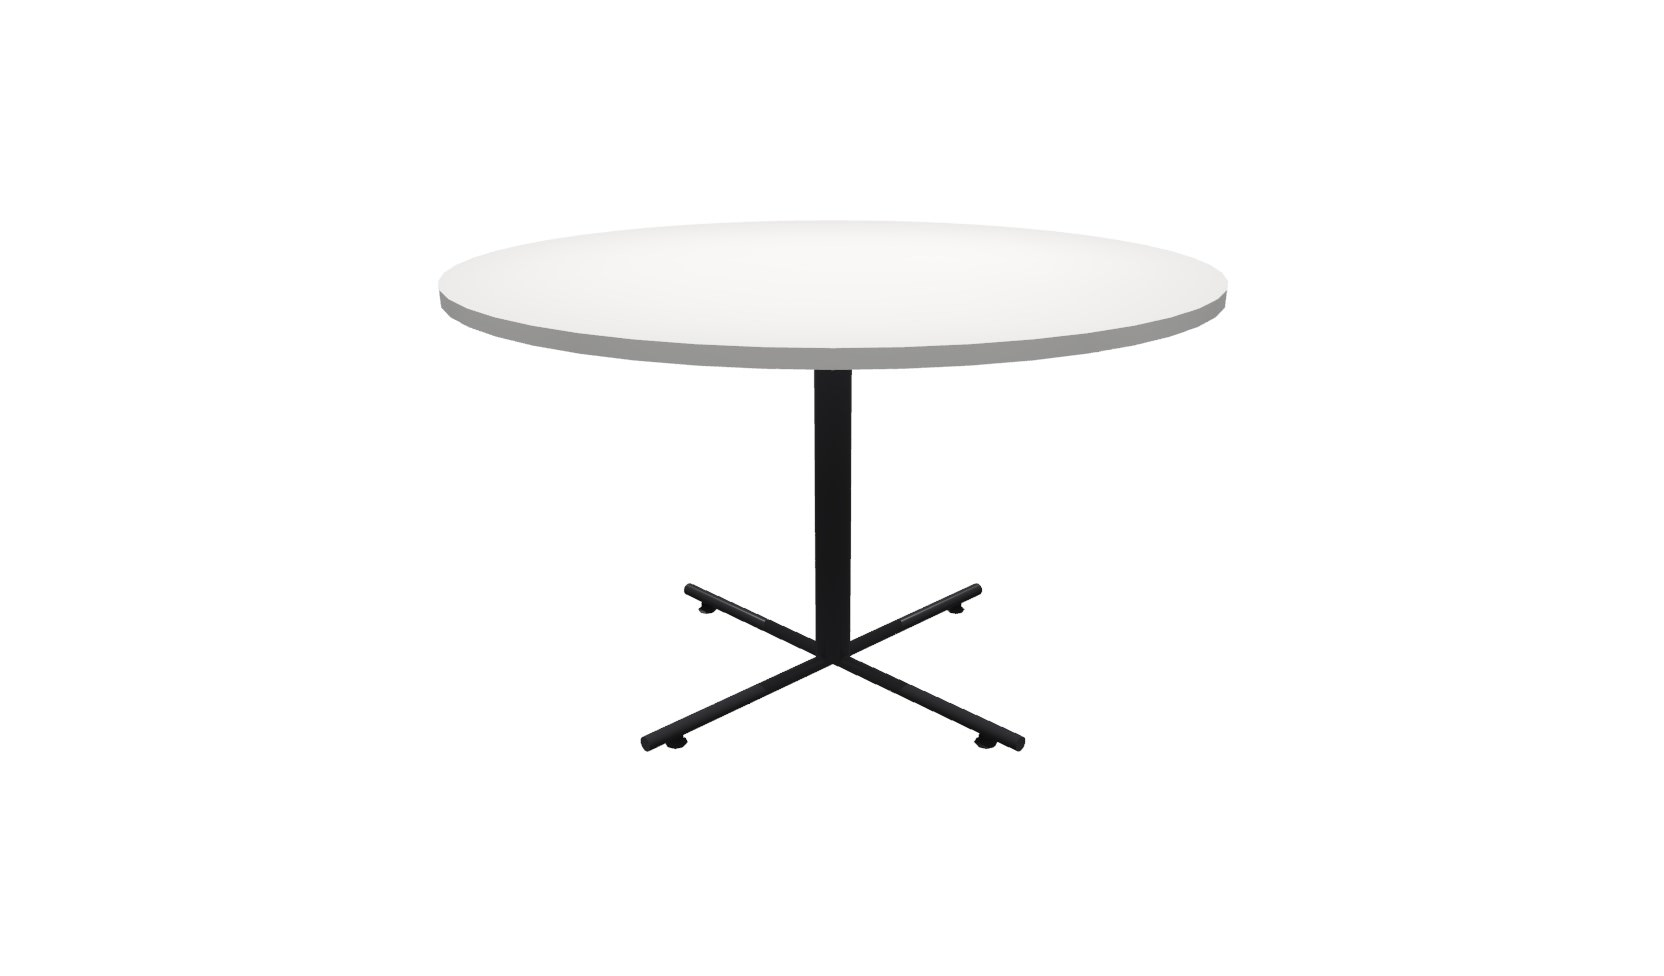 48 Inch Round Conference Table   (White / Black)